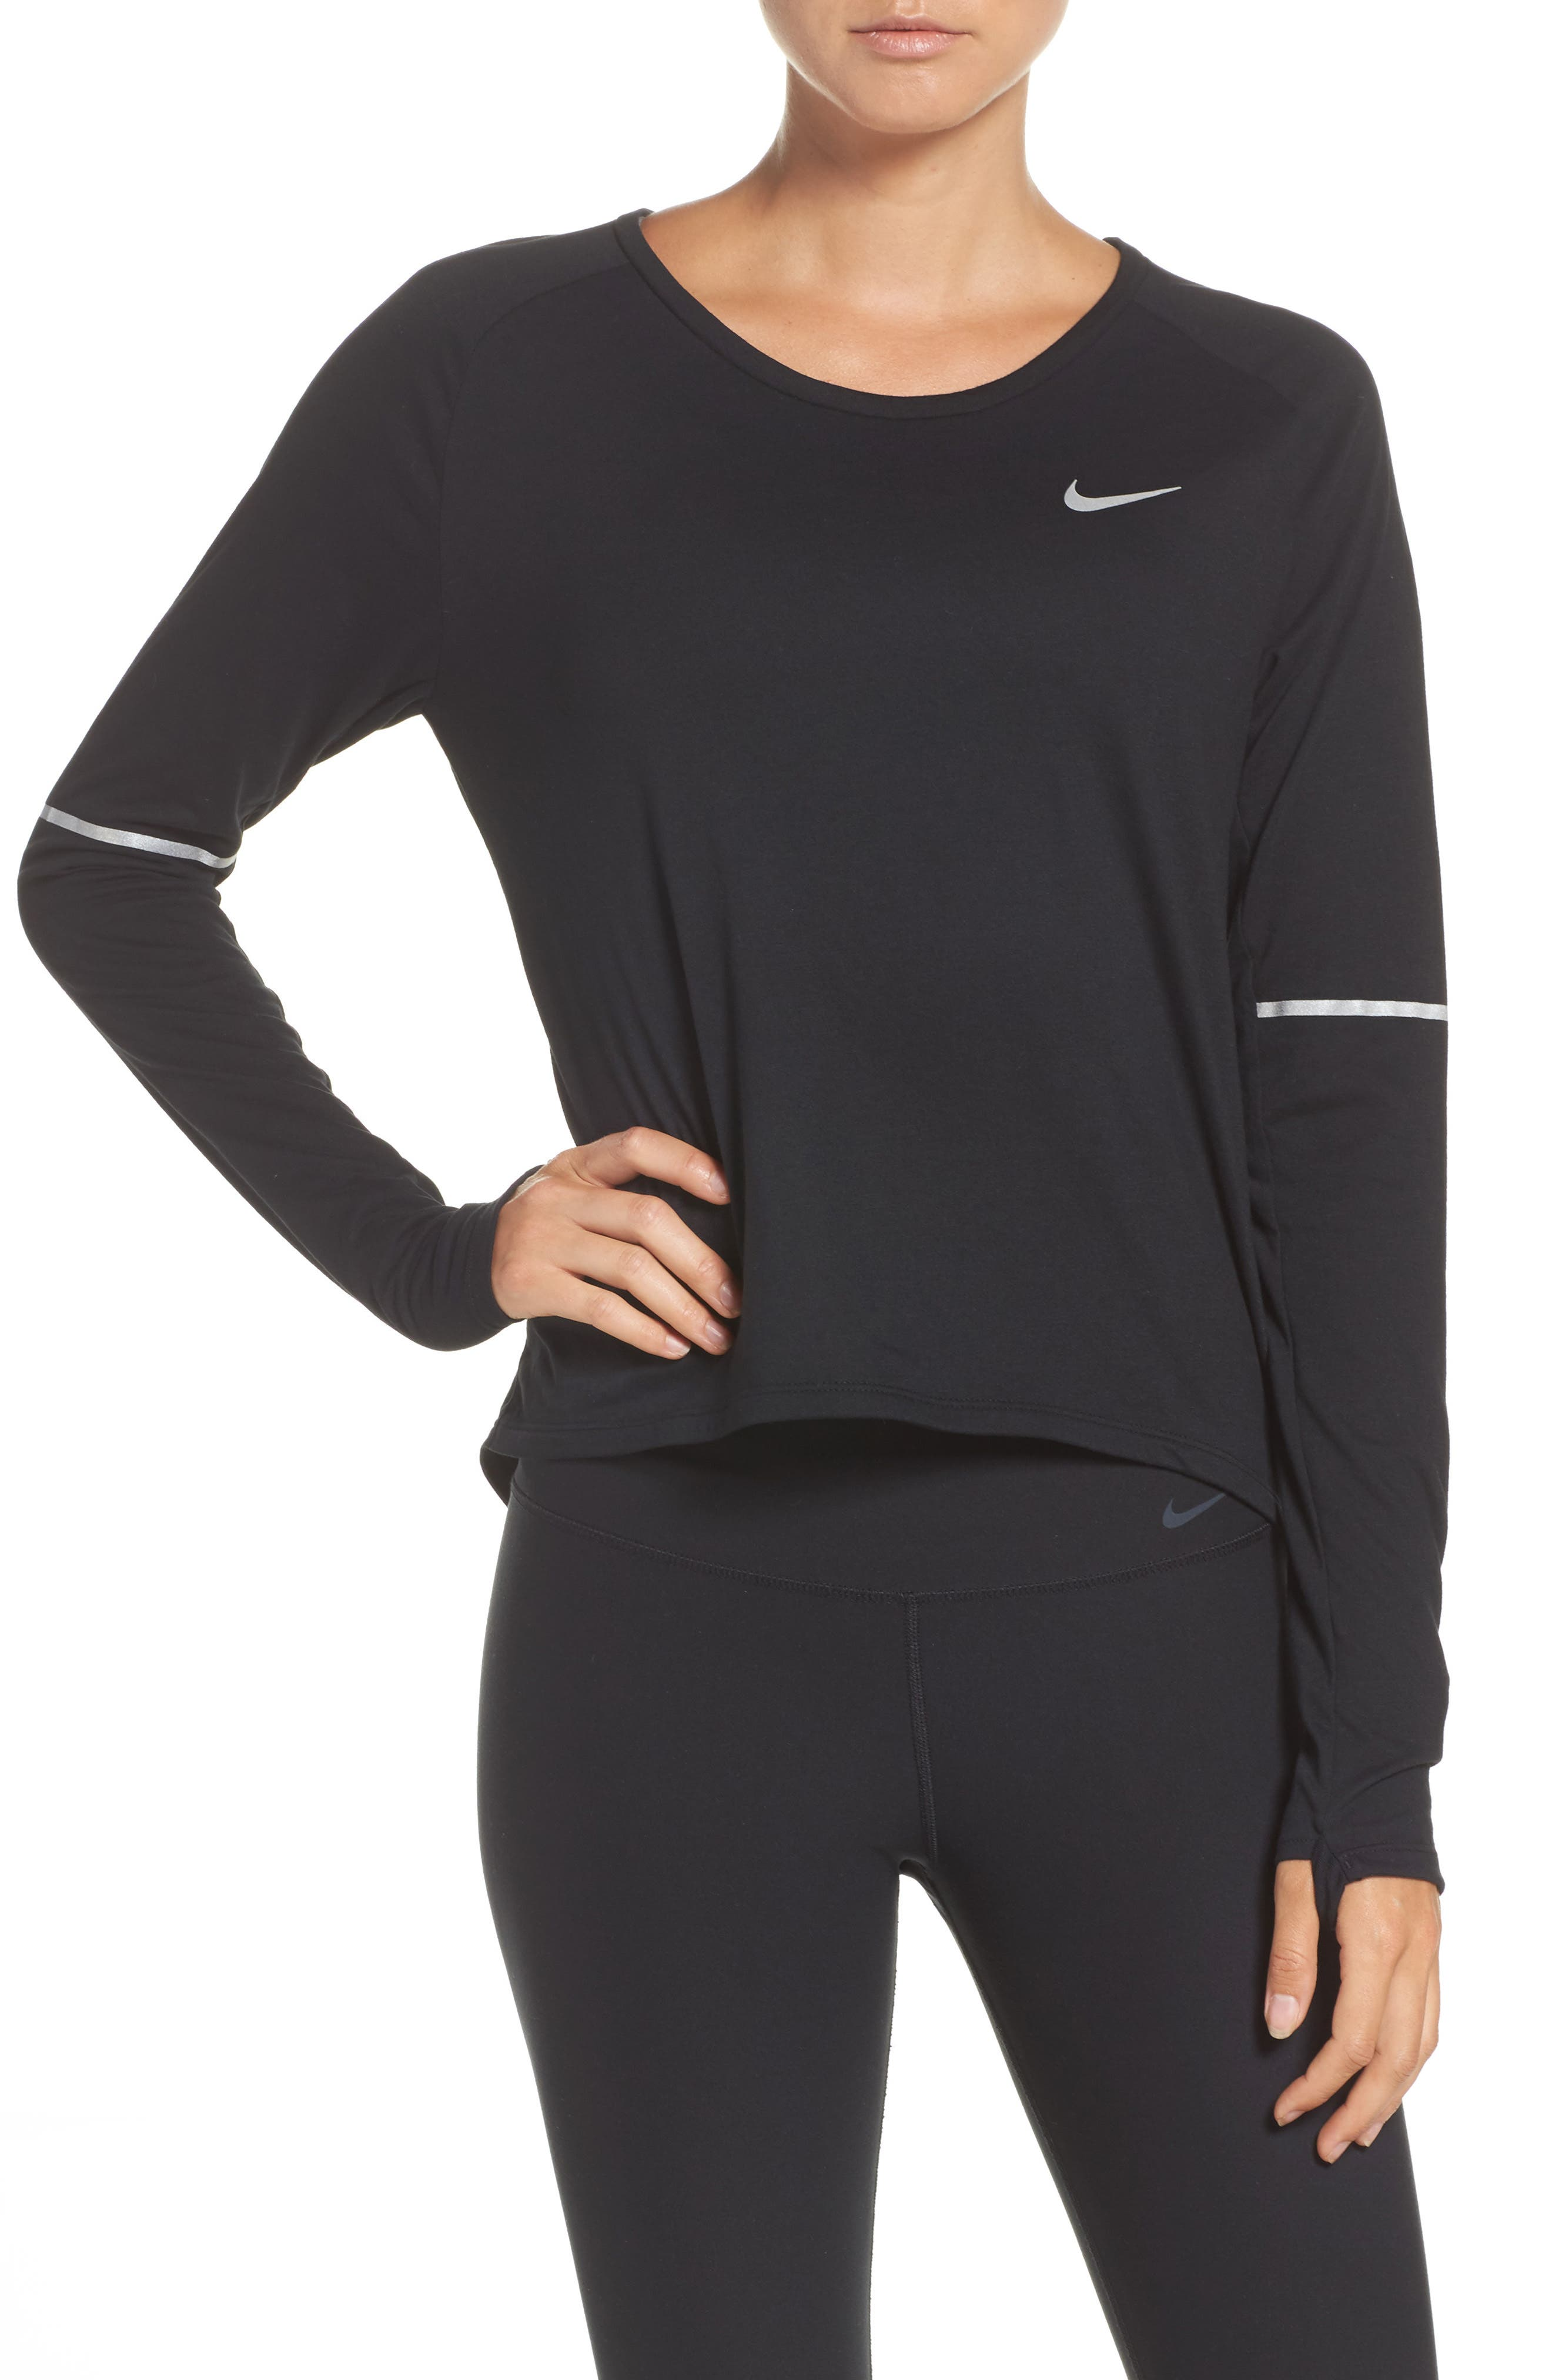 Breathe Running Top,                             Main thumbnail 1, color,                             Black